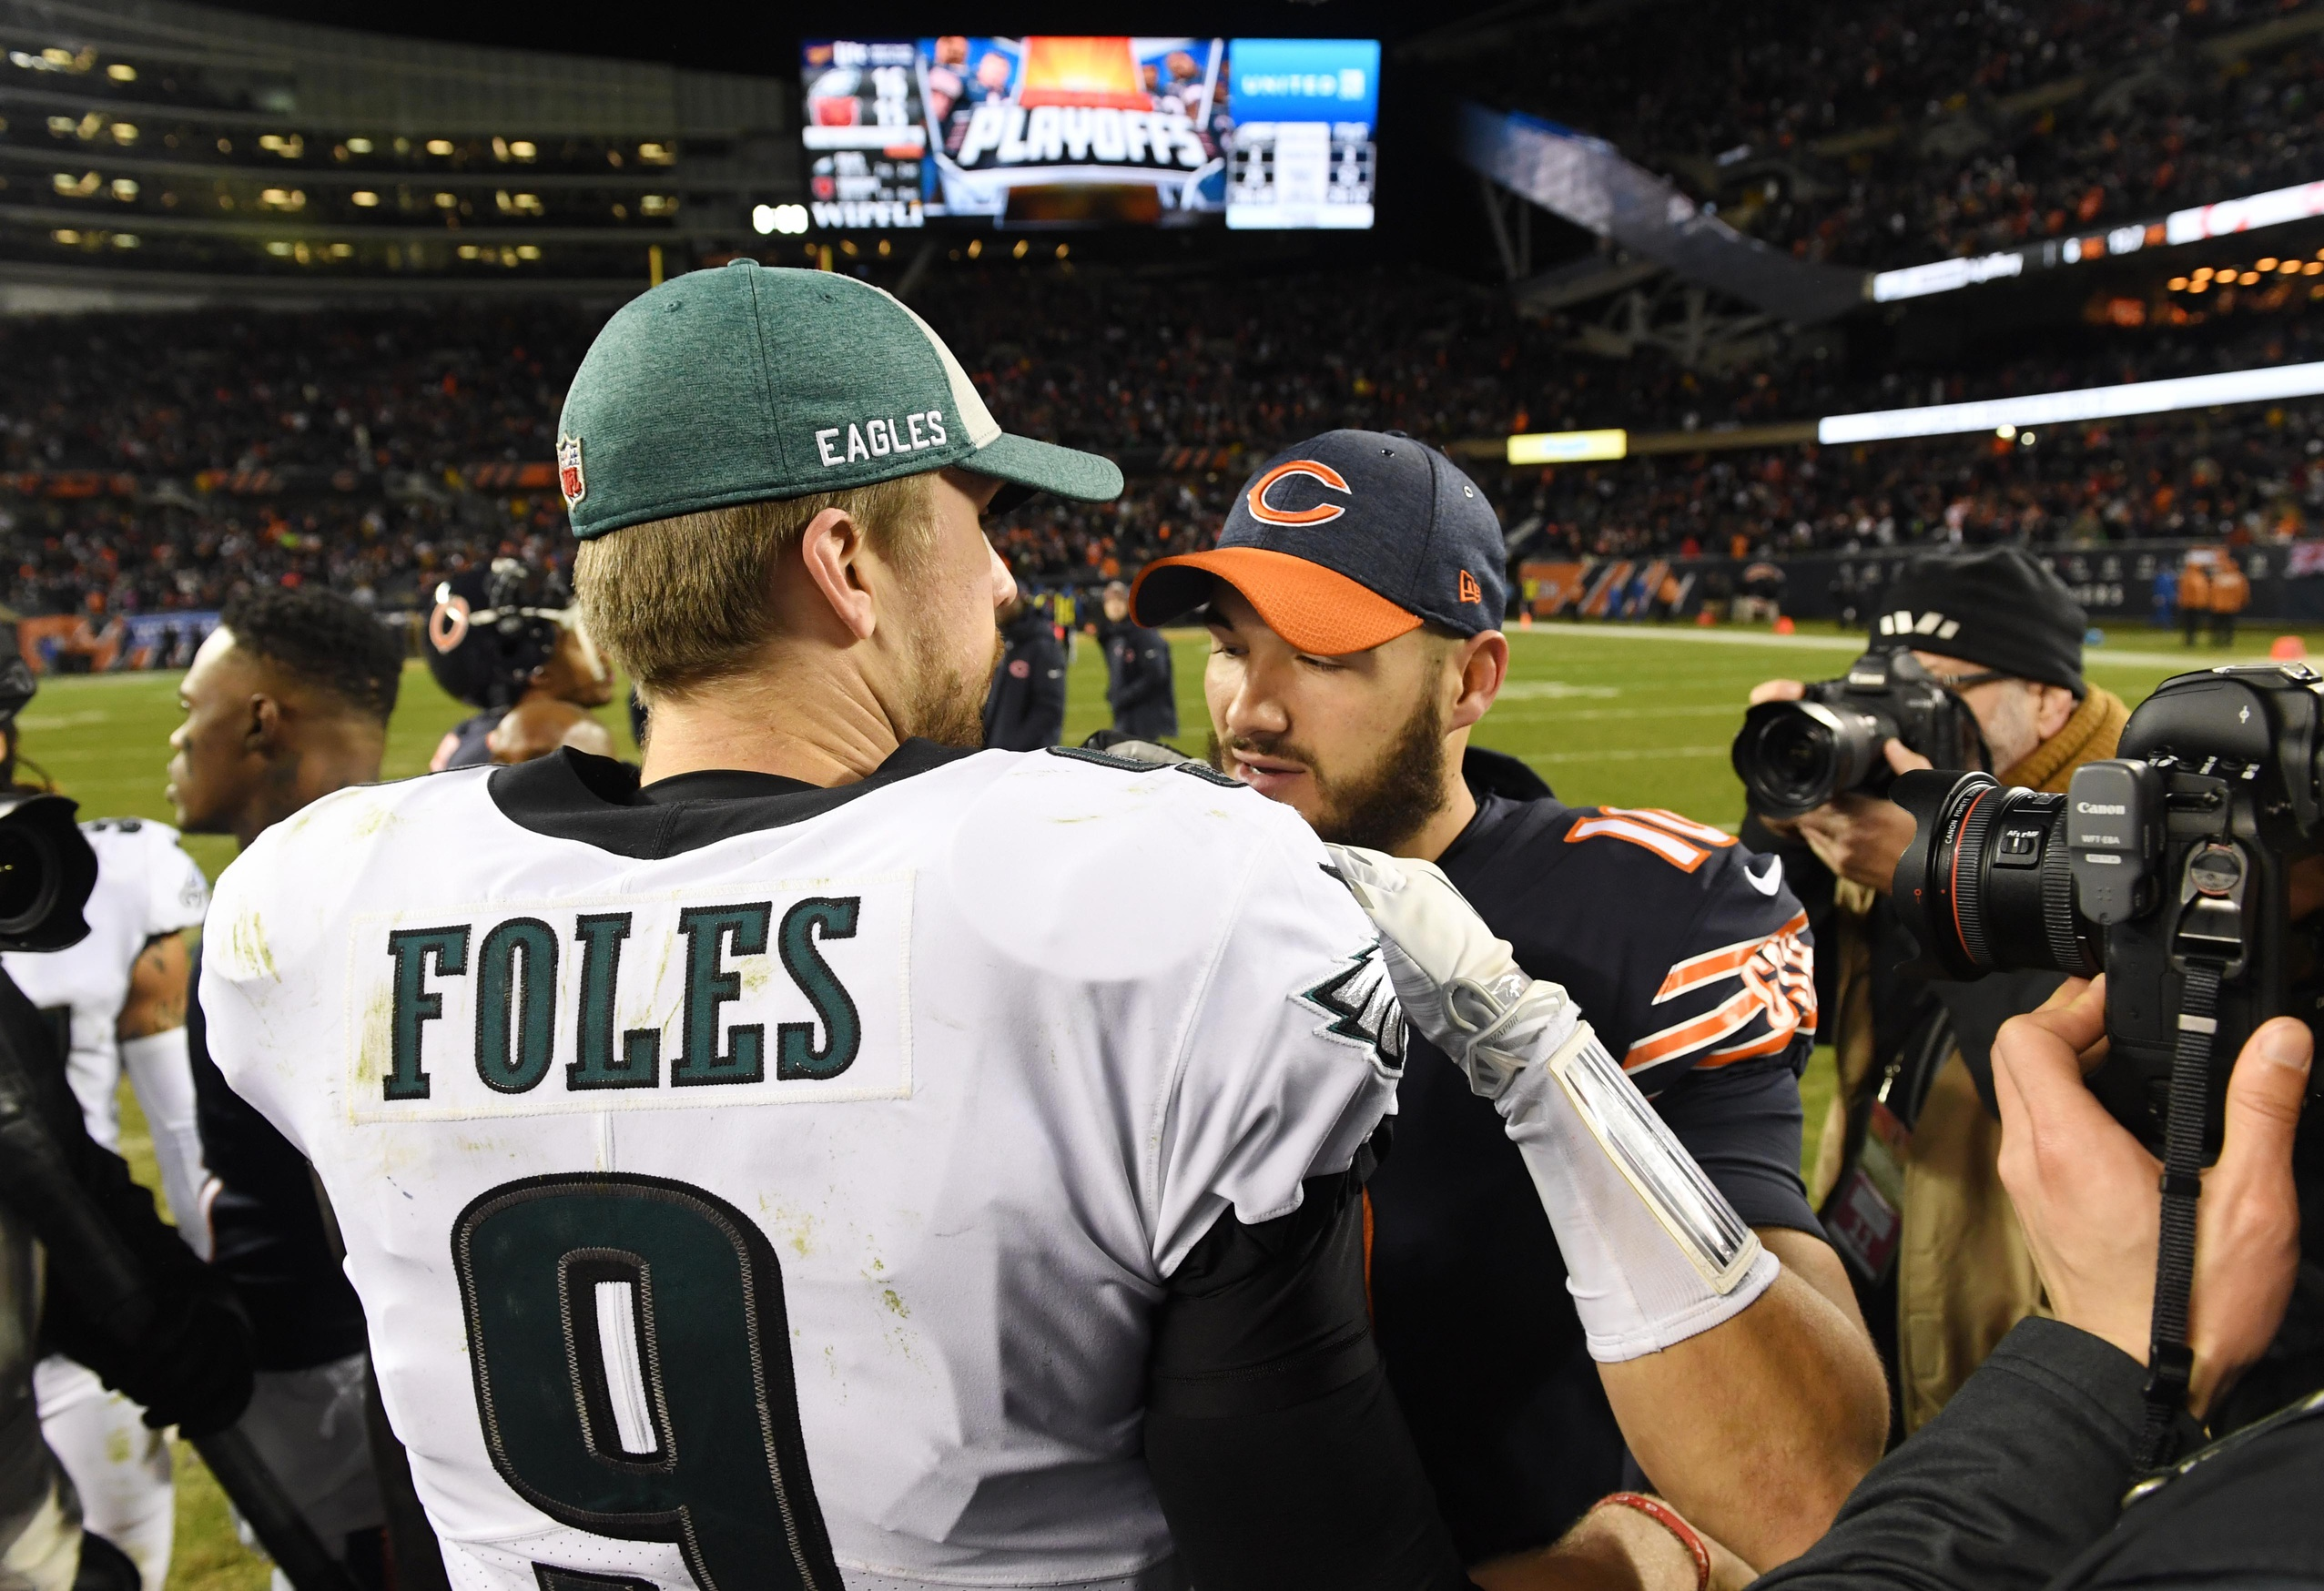 Trubisky en Foles gaan dit off-season de strijd aan in Chicago